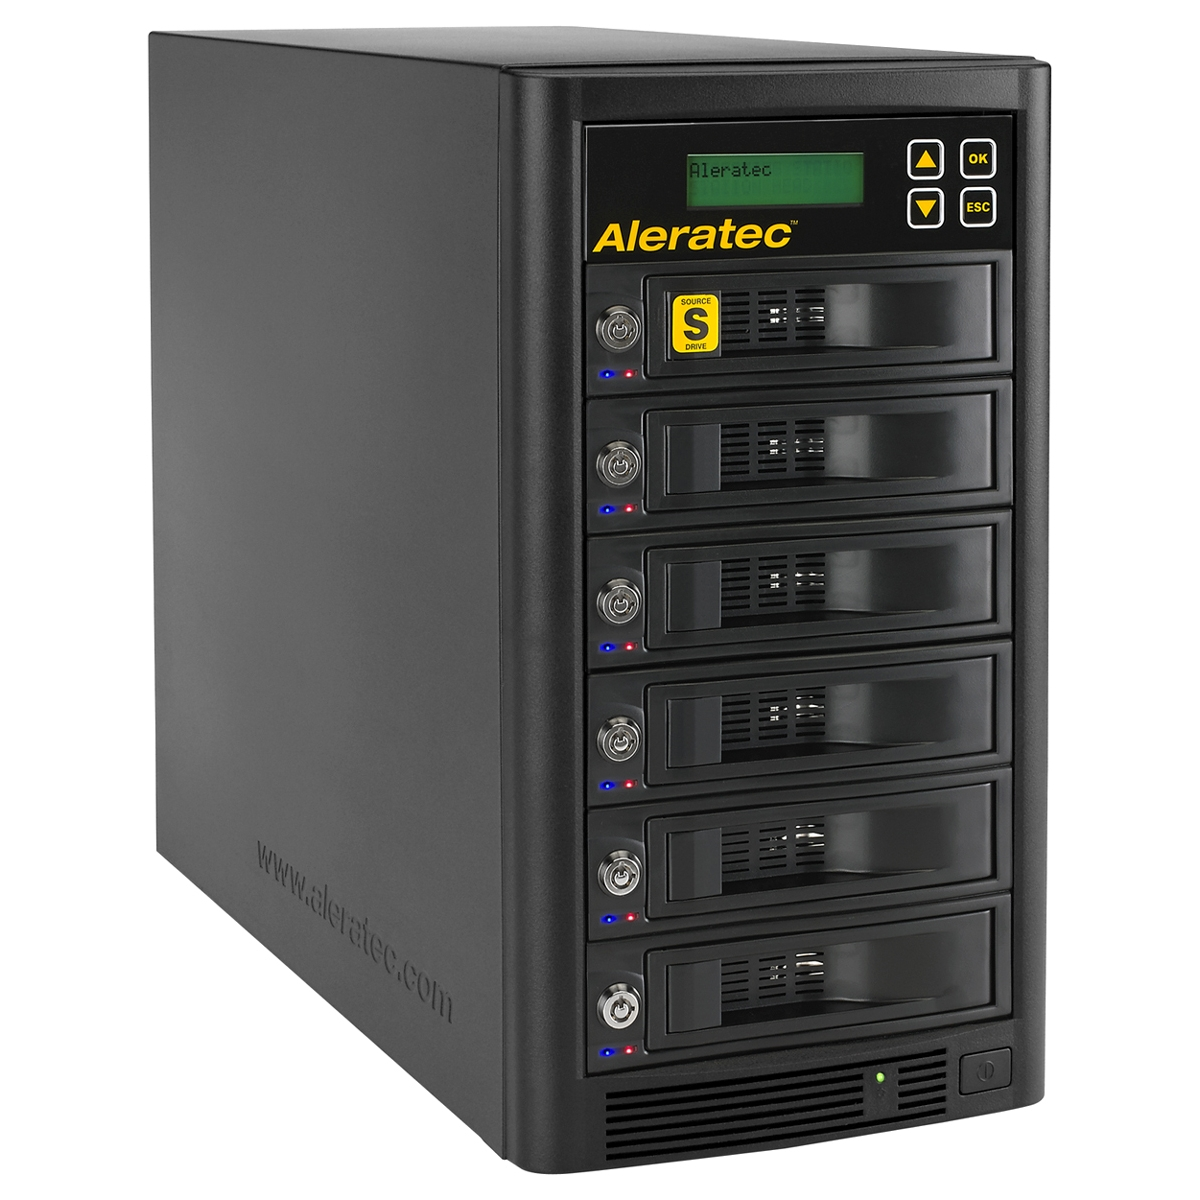 The Aleratec 1:5 HDD Copy Cruiser High-Speed is an industrial-strength standalone hard disk drive duplicator that can create five clone hard disk drives simultaneously at speeds up to a blazing 120MB/s. It can also securely wipe all the data from up to s